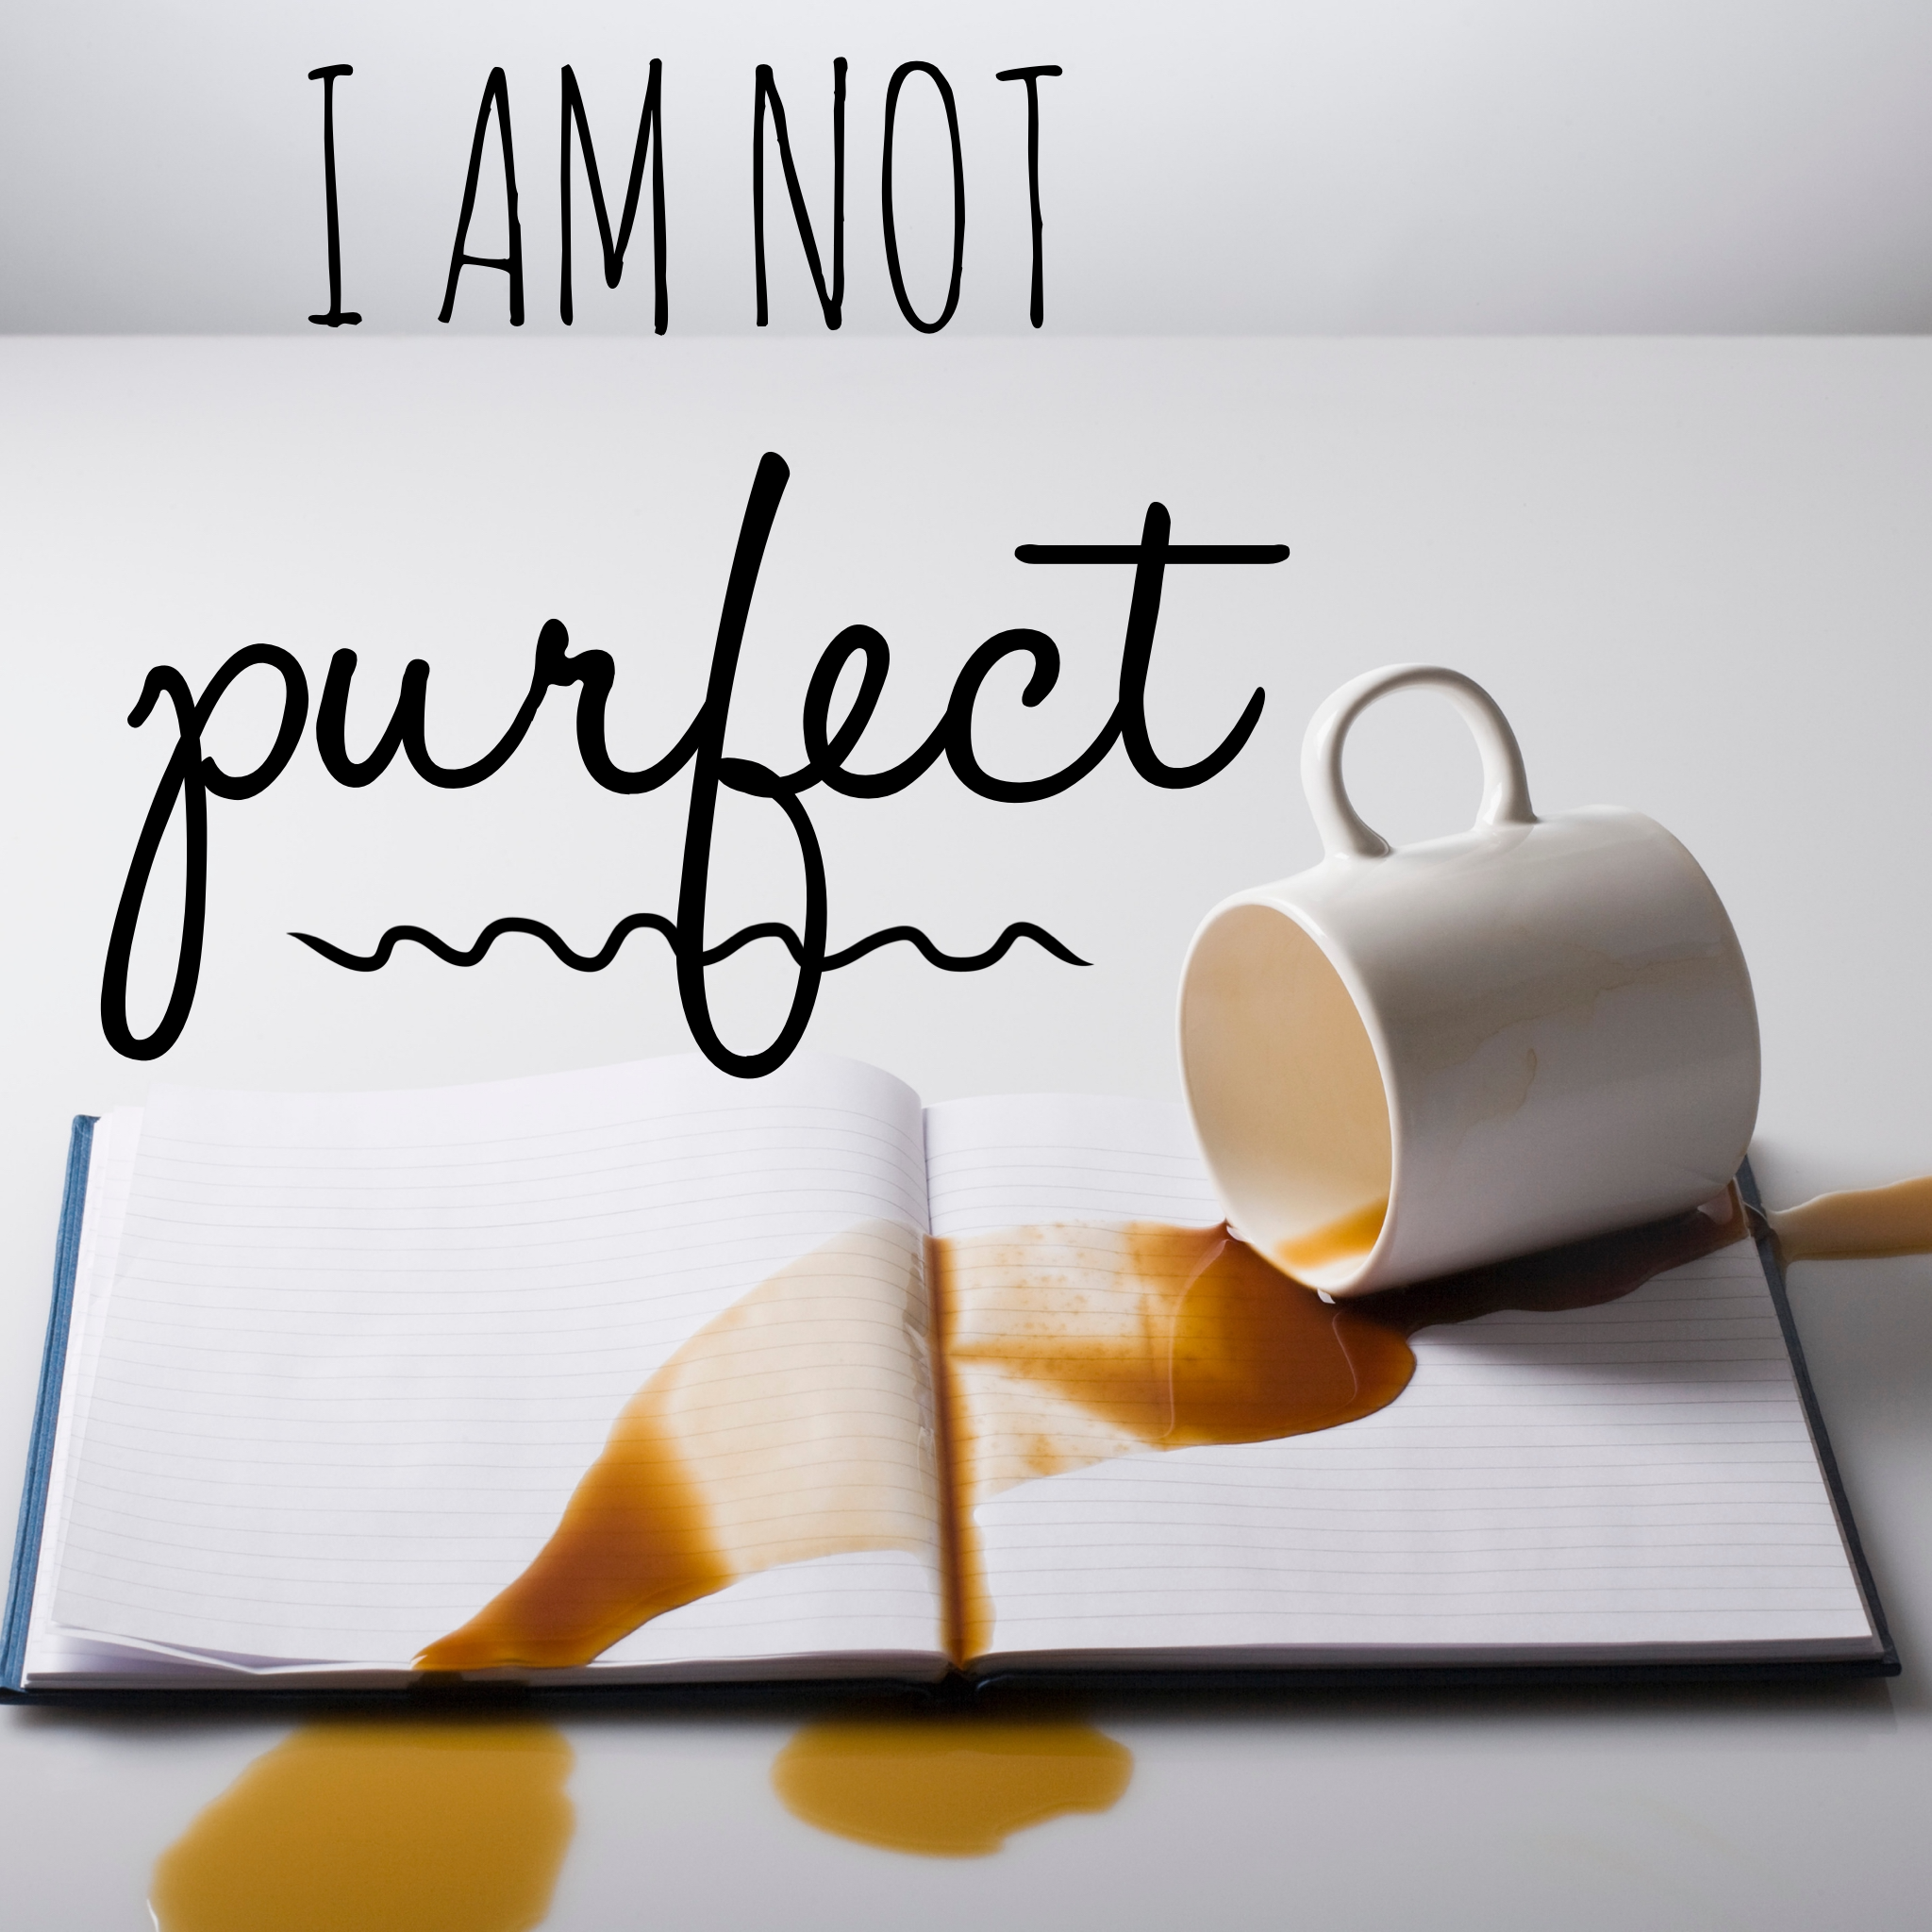 i am not purfect